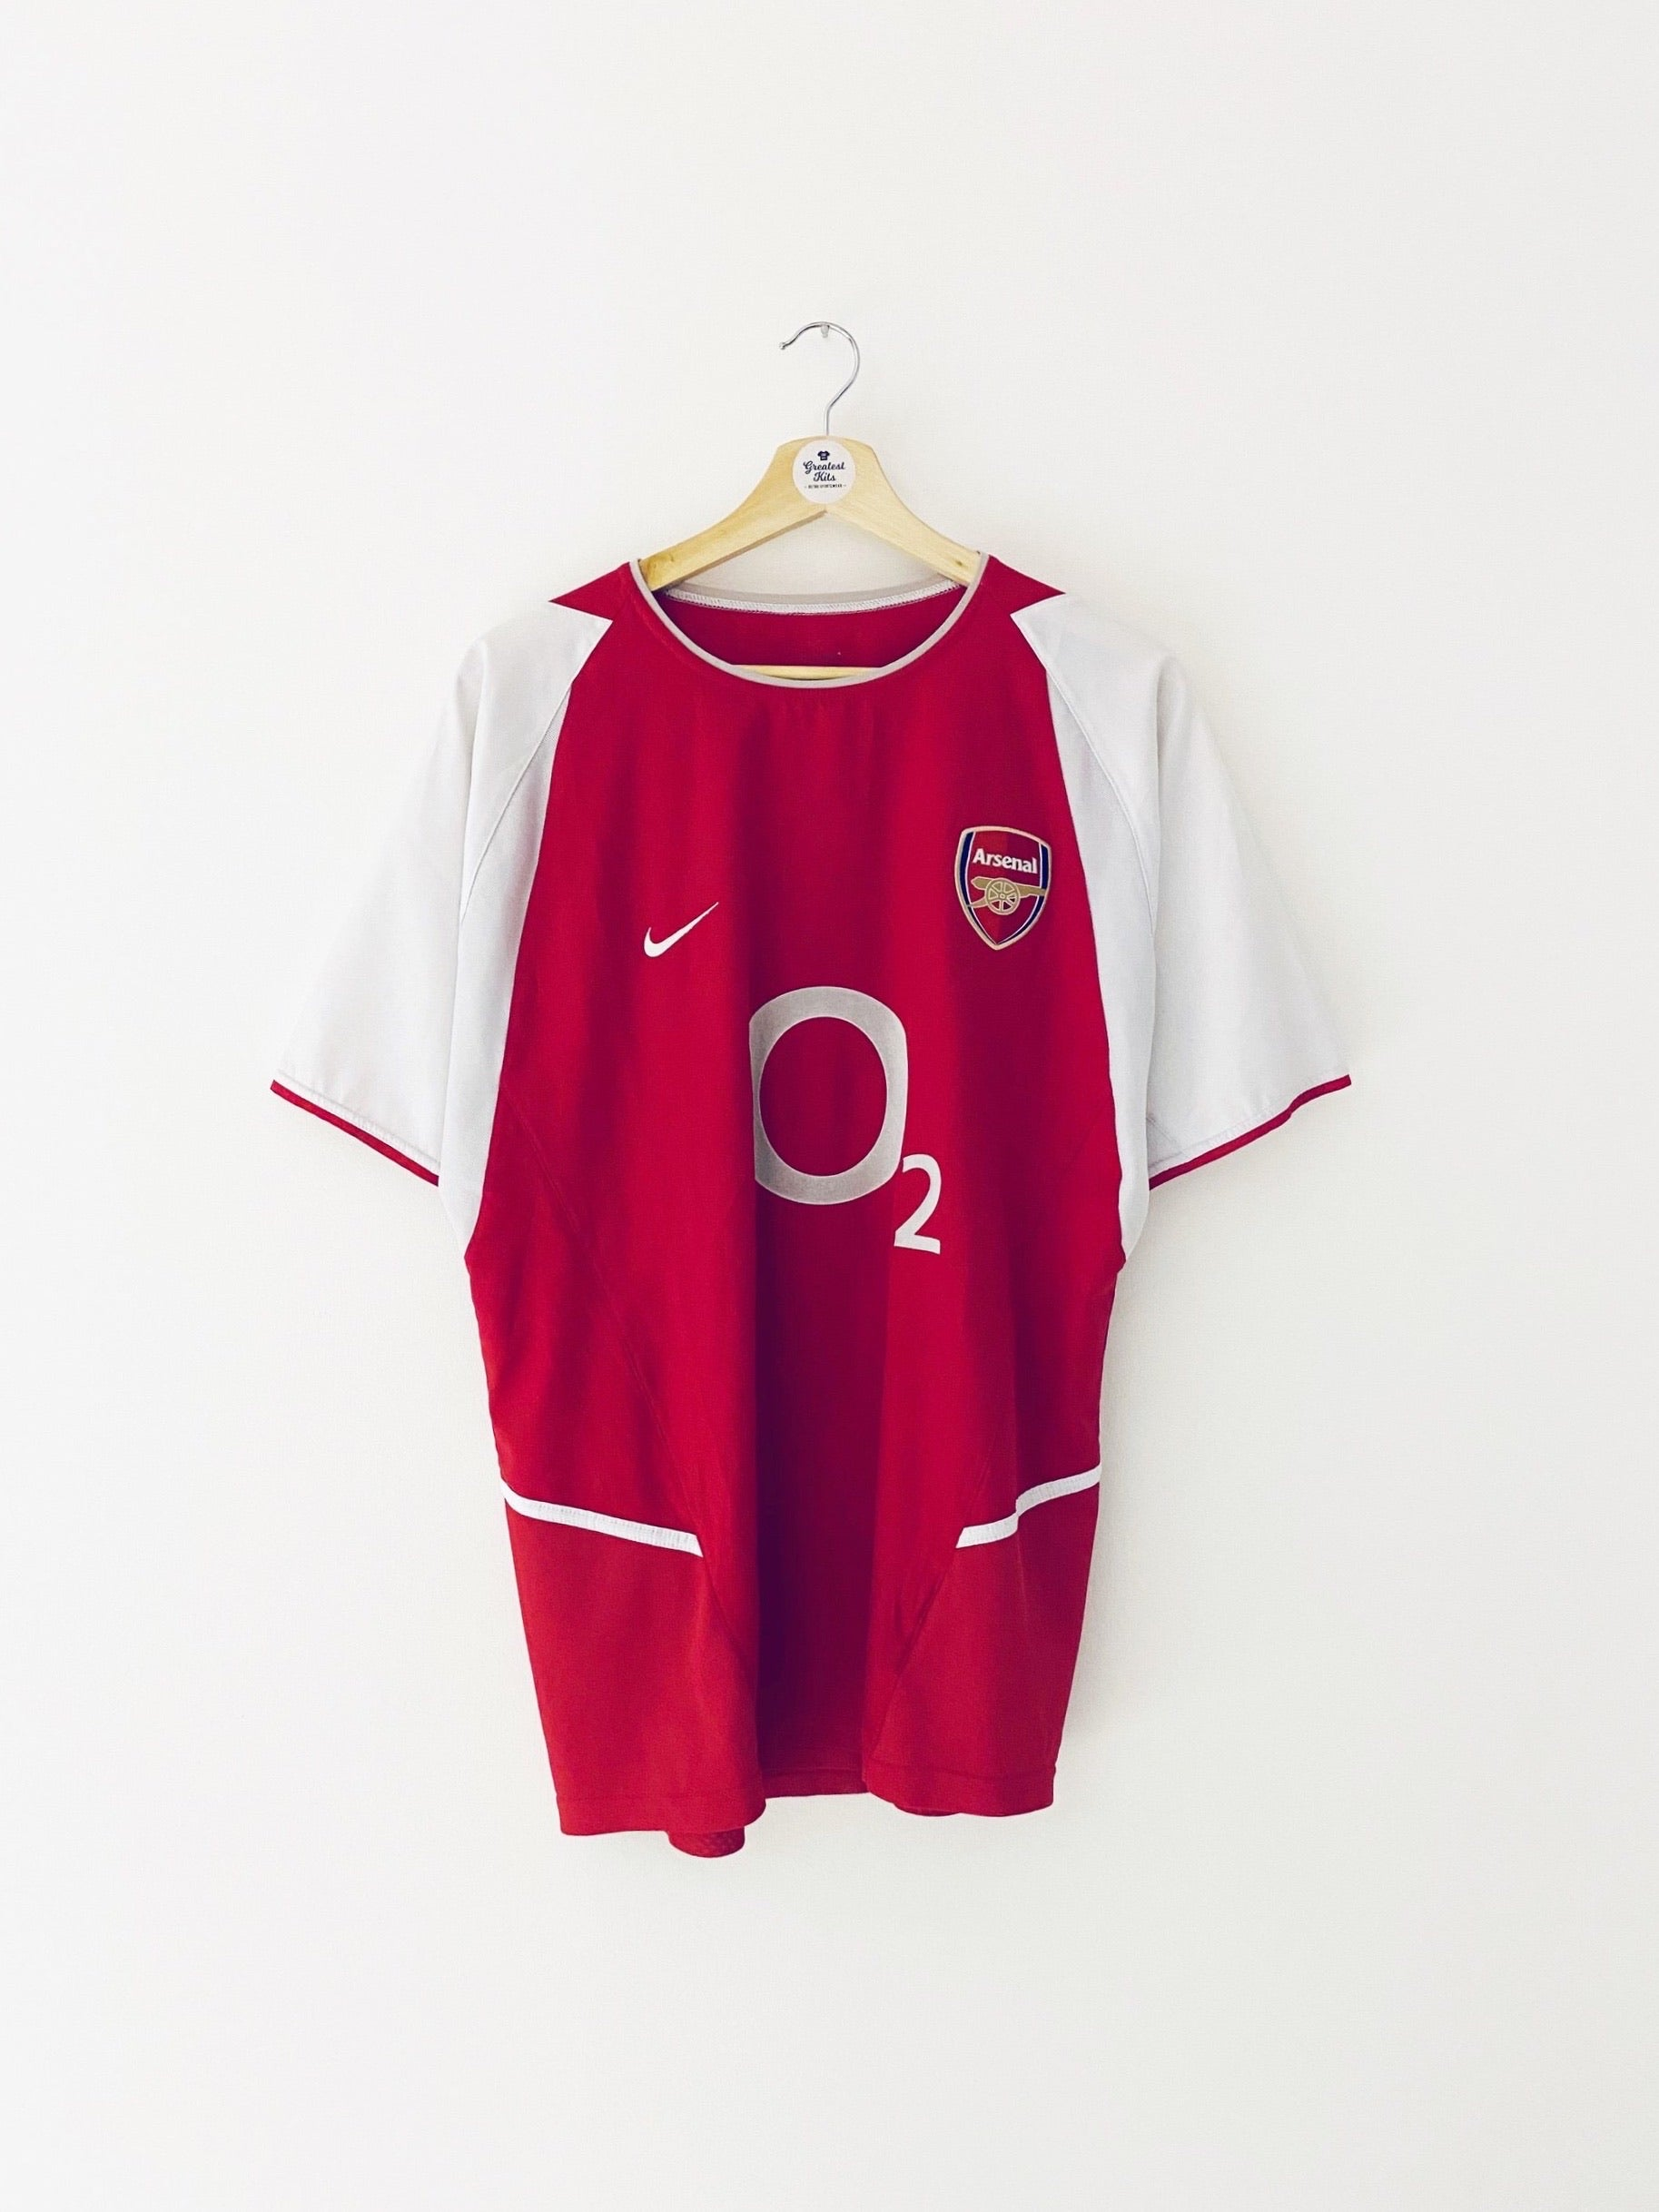 2002/04 Arsenal Home Shirt (M) 8.5/10